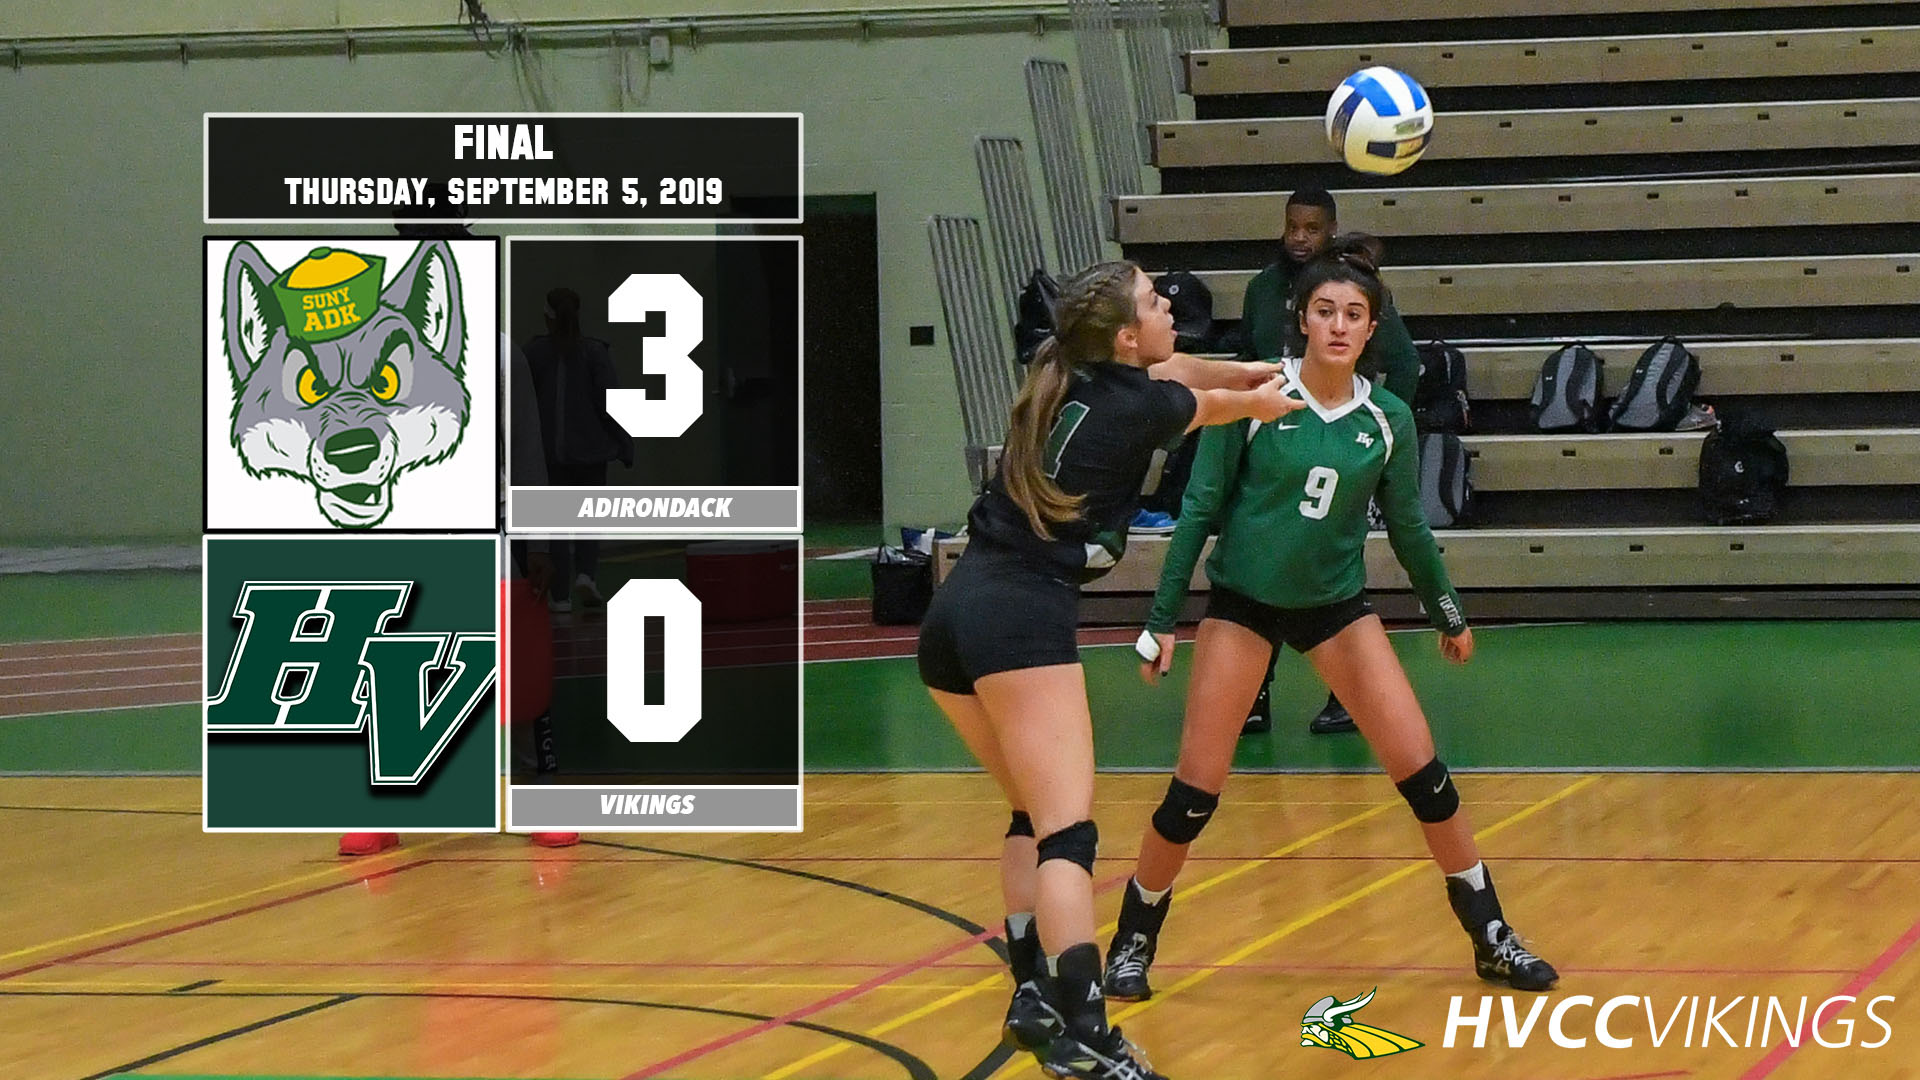 Volleyball defeated by Adirondack 3-0 on Sept. 5, 2019